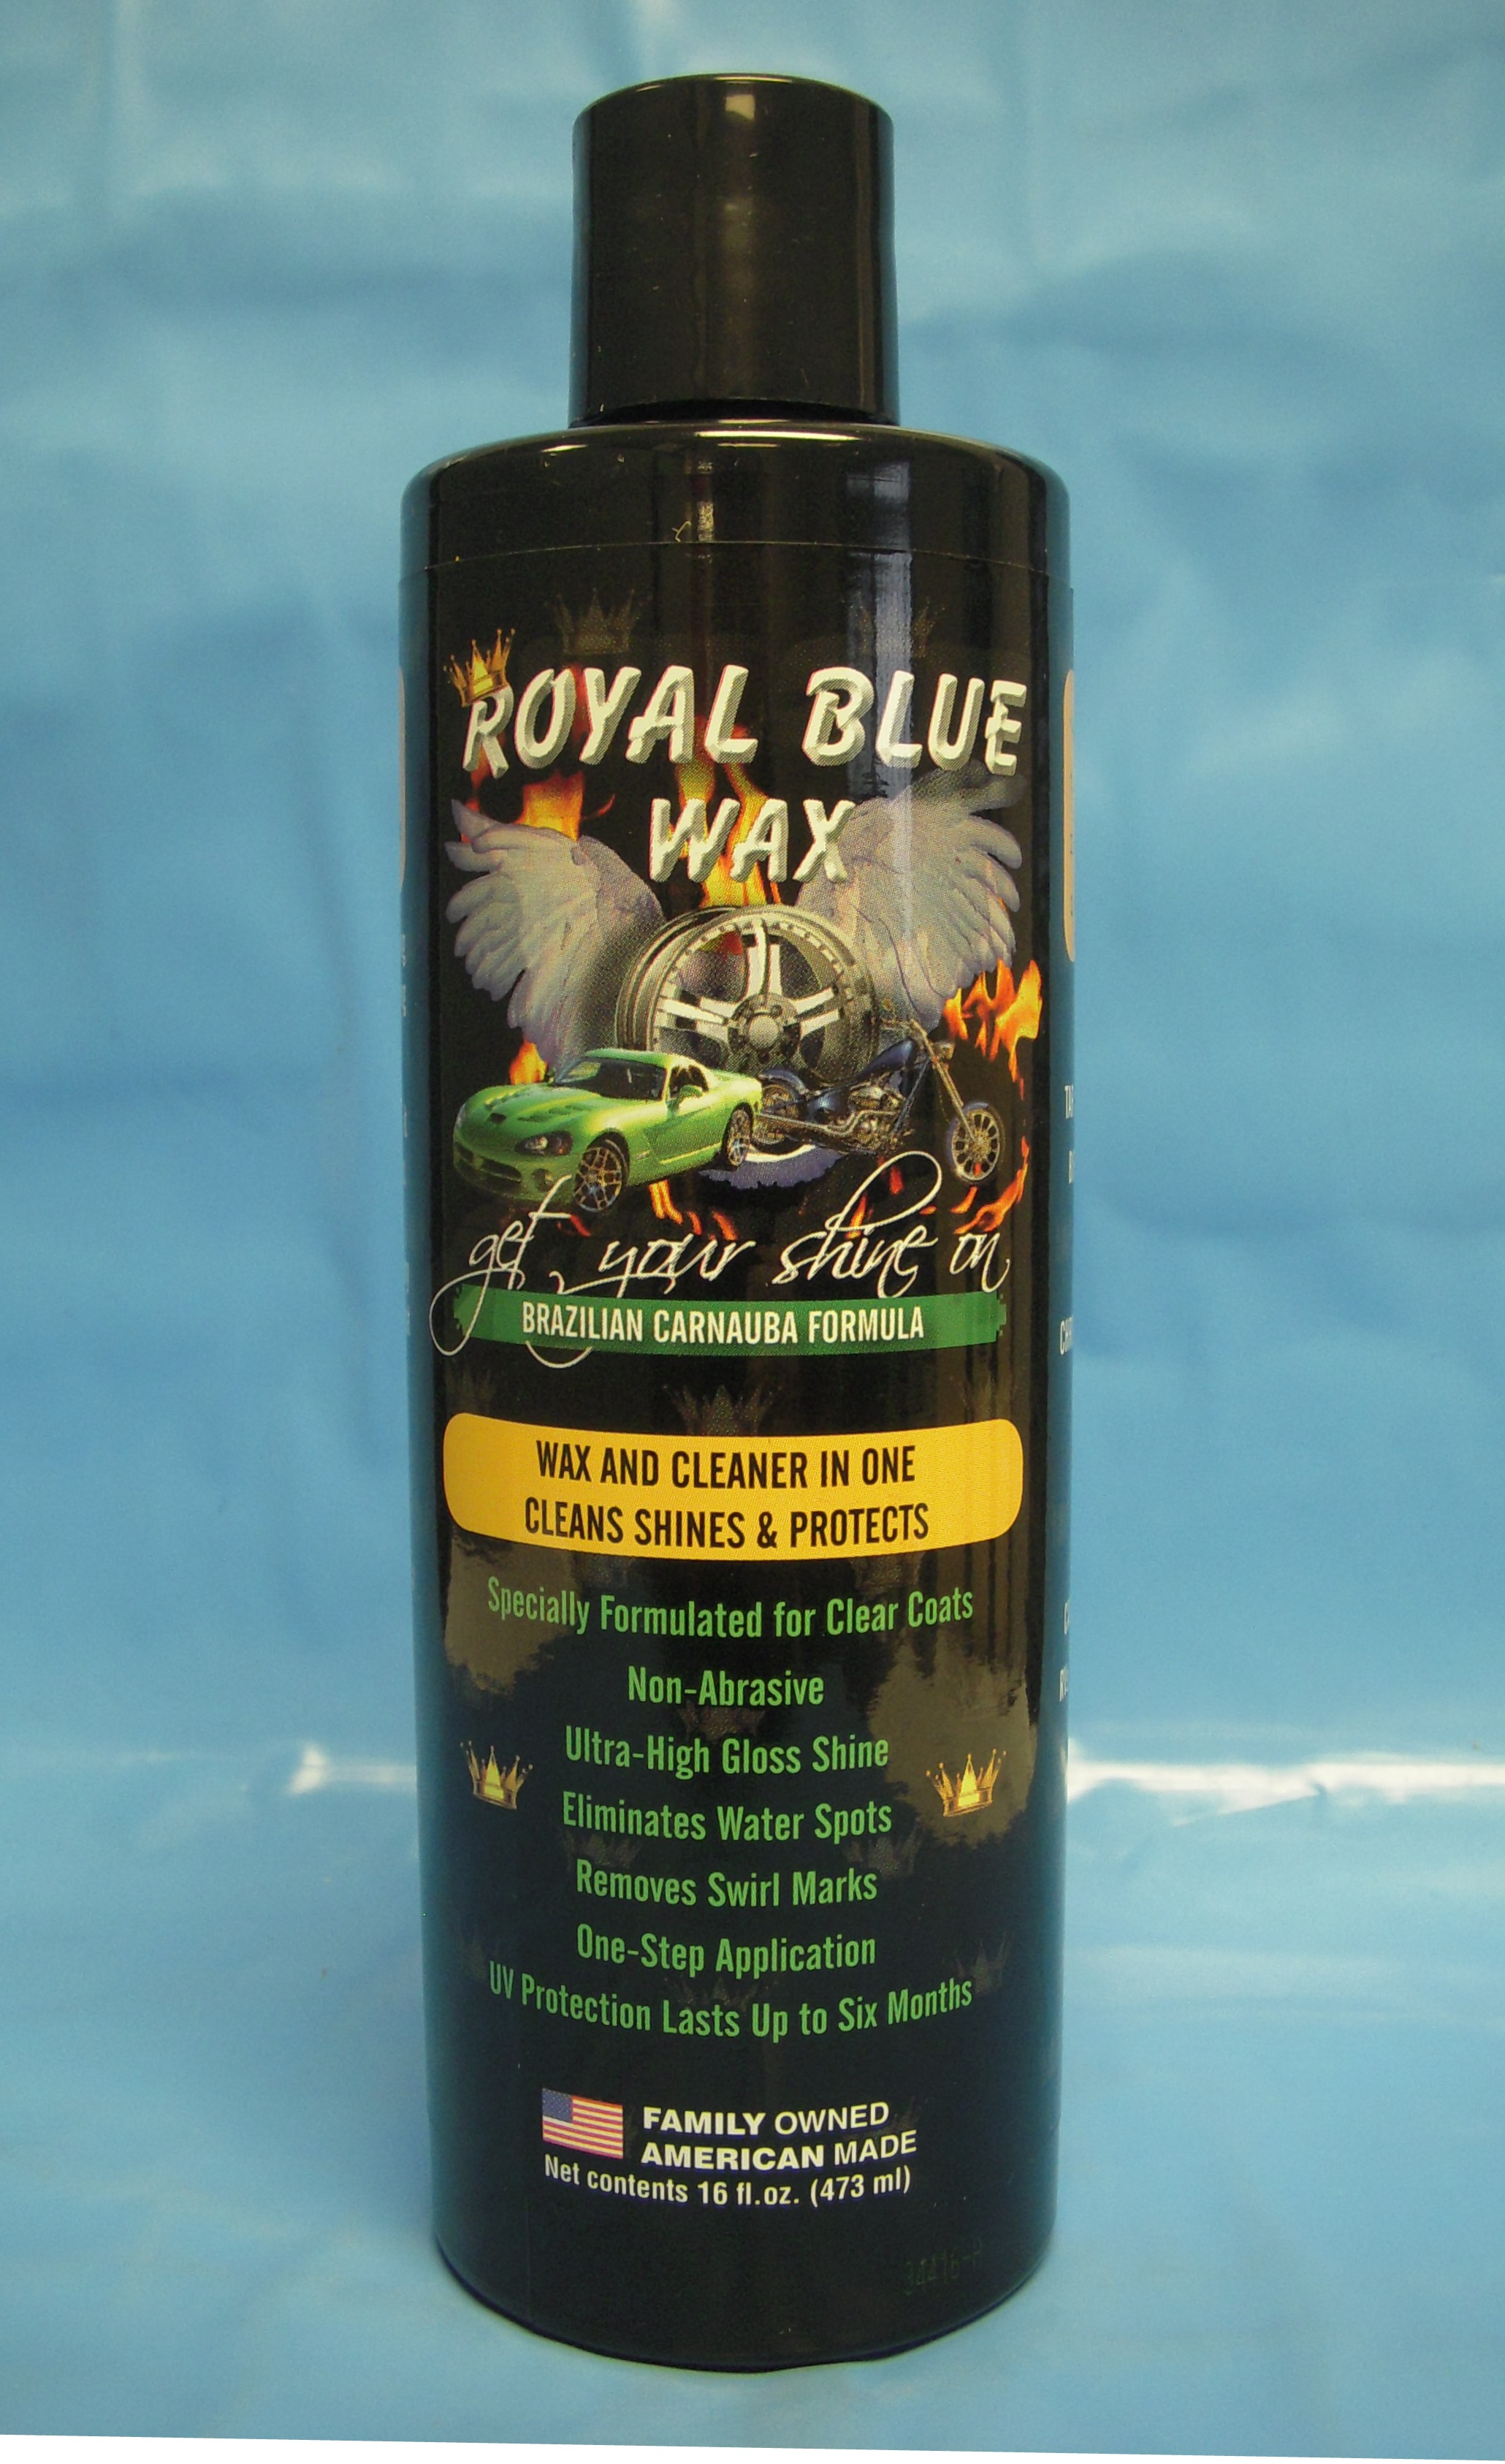 Royal blue wax reviews